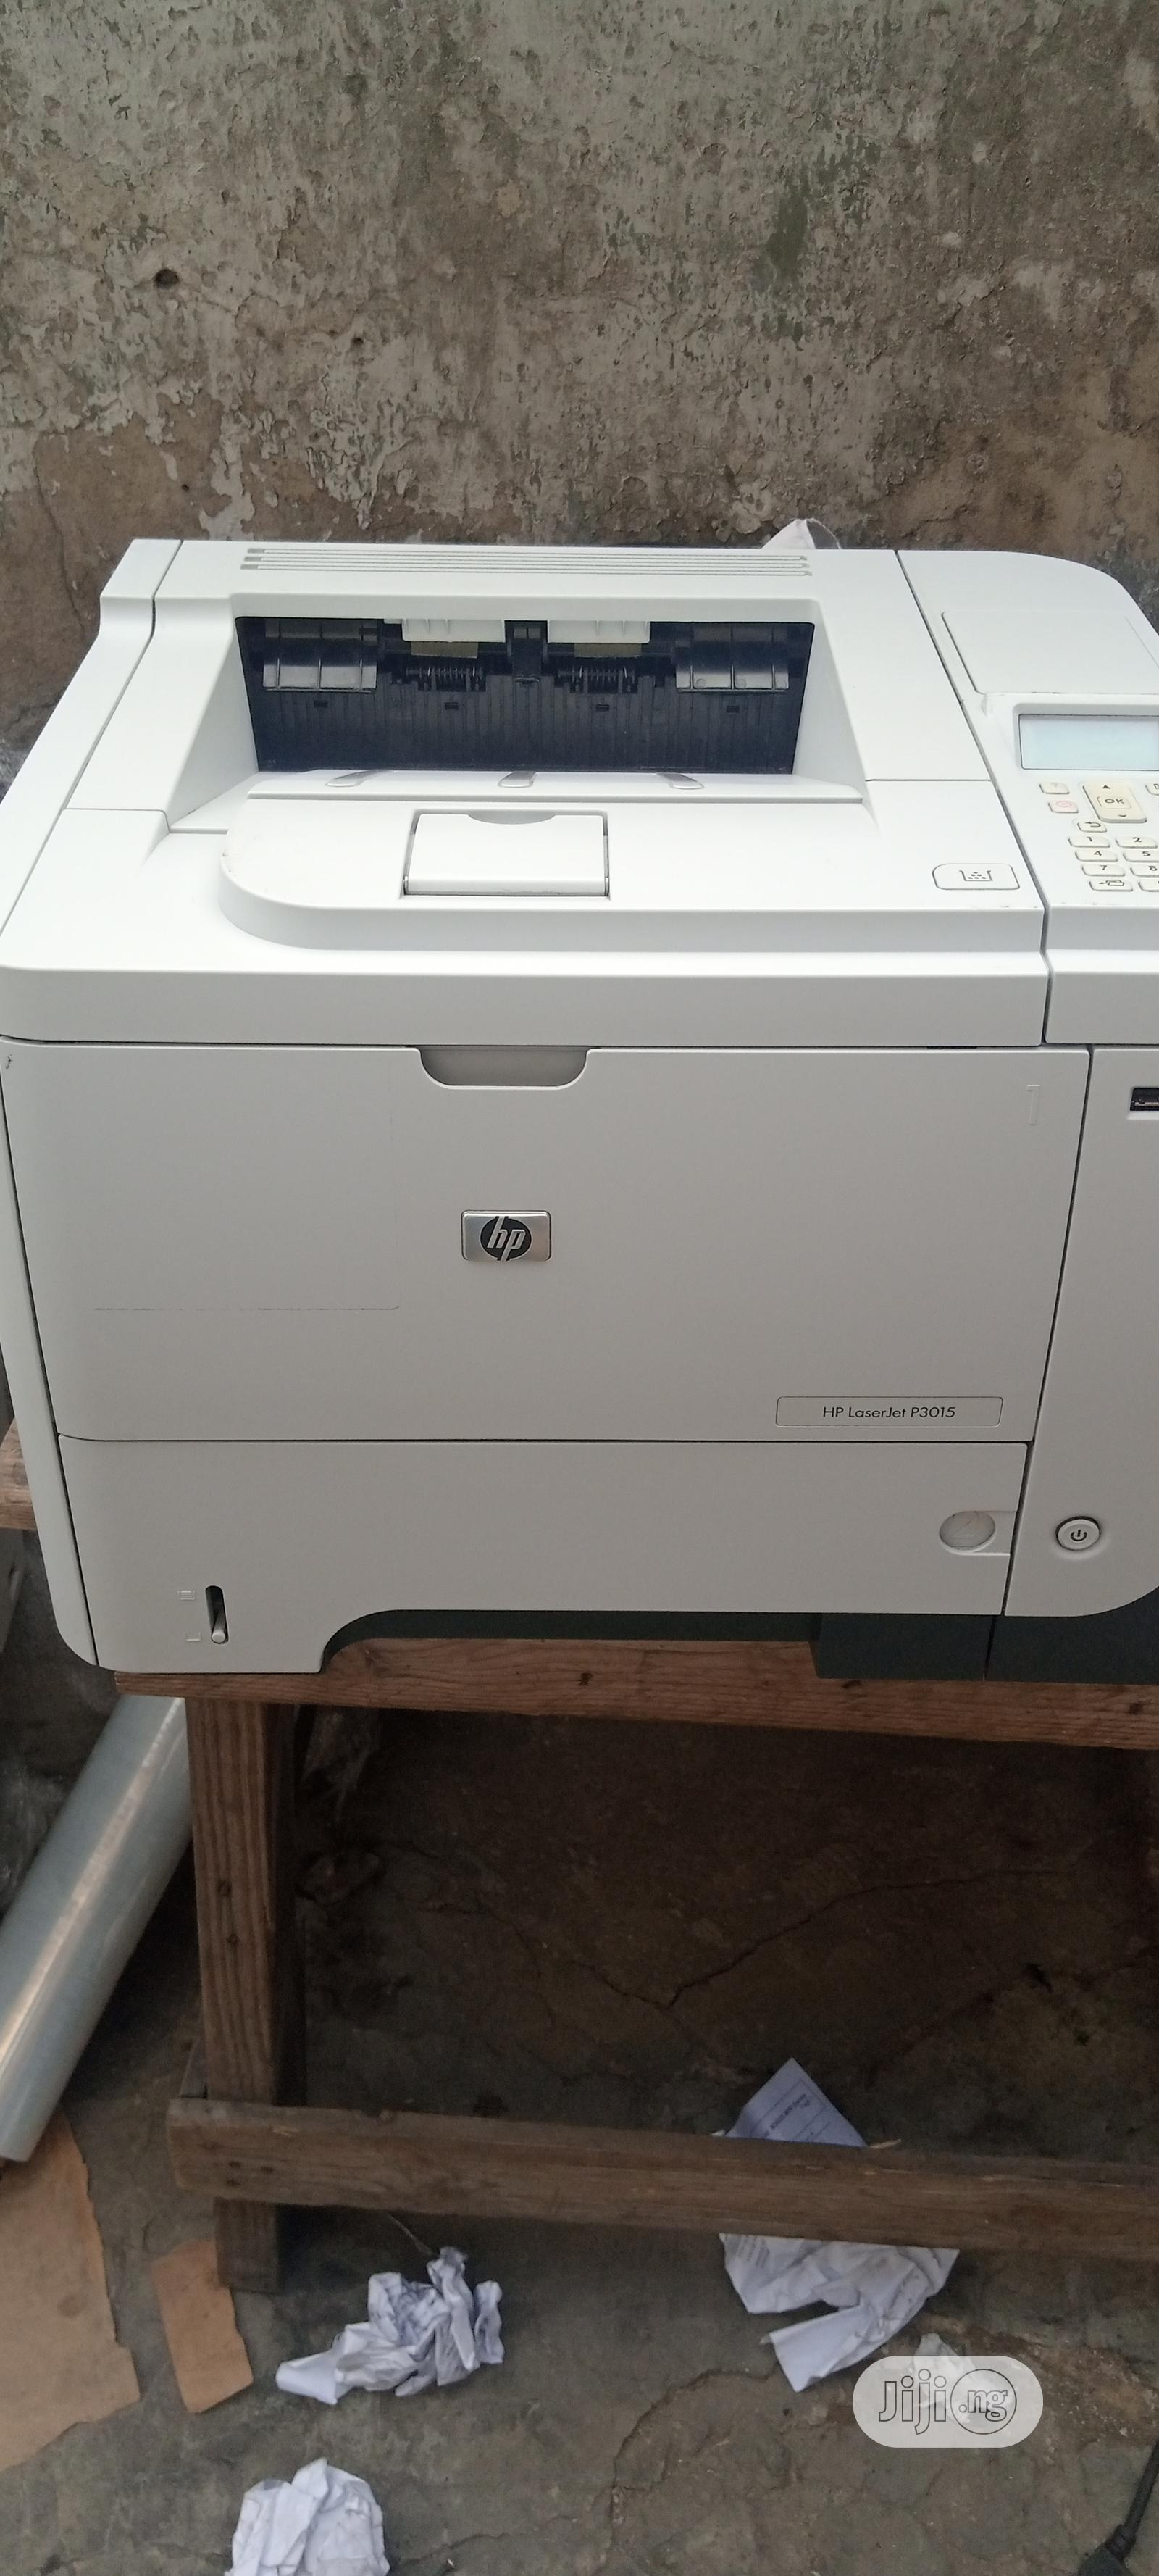 Hp Laserjet P3015 Printer Black And White | Printers & Scanners for sale in Surulere, Lagos State, Nigeria